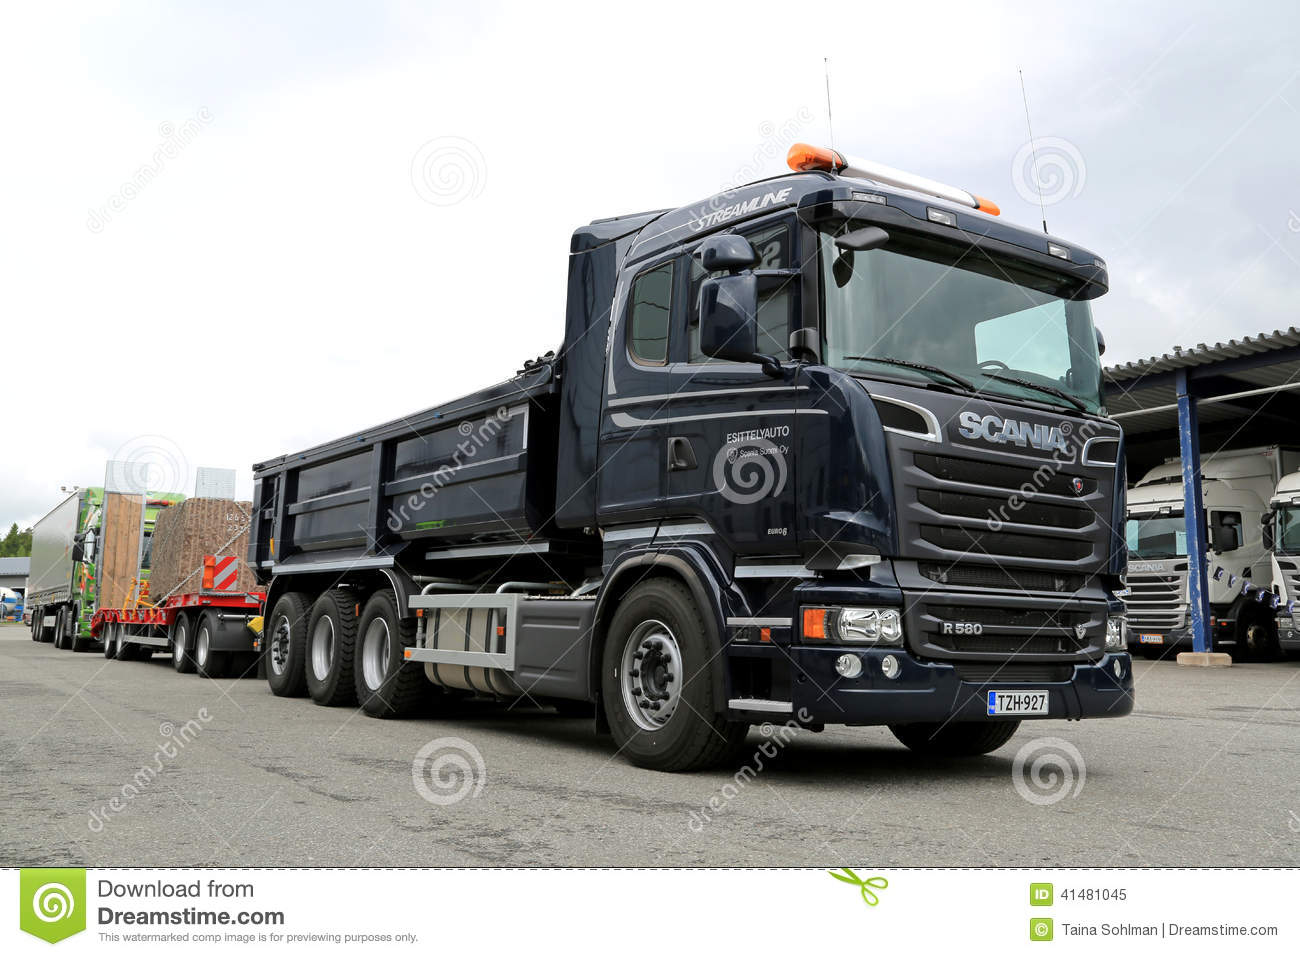 Fabuleux Scania R580 Euro 6 V8 Construction Truck Editorial Image - Image  XV78